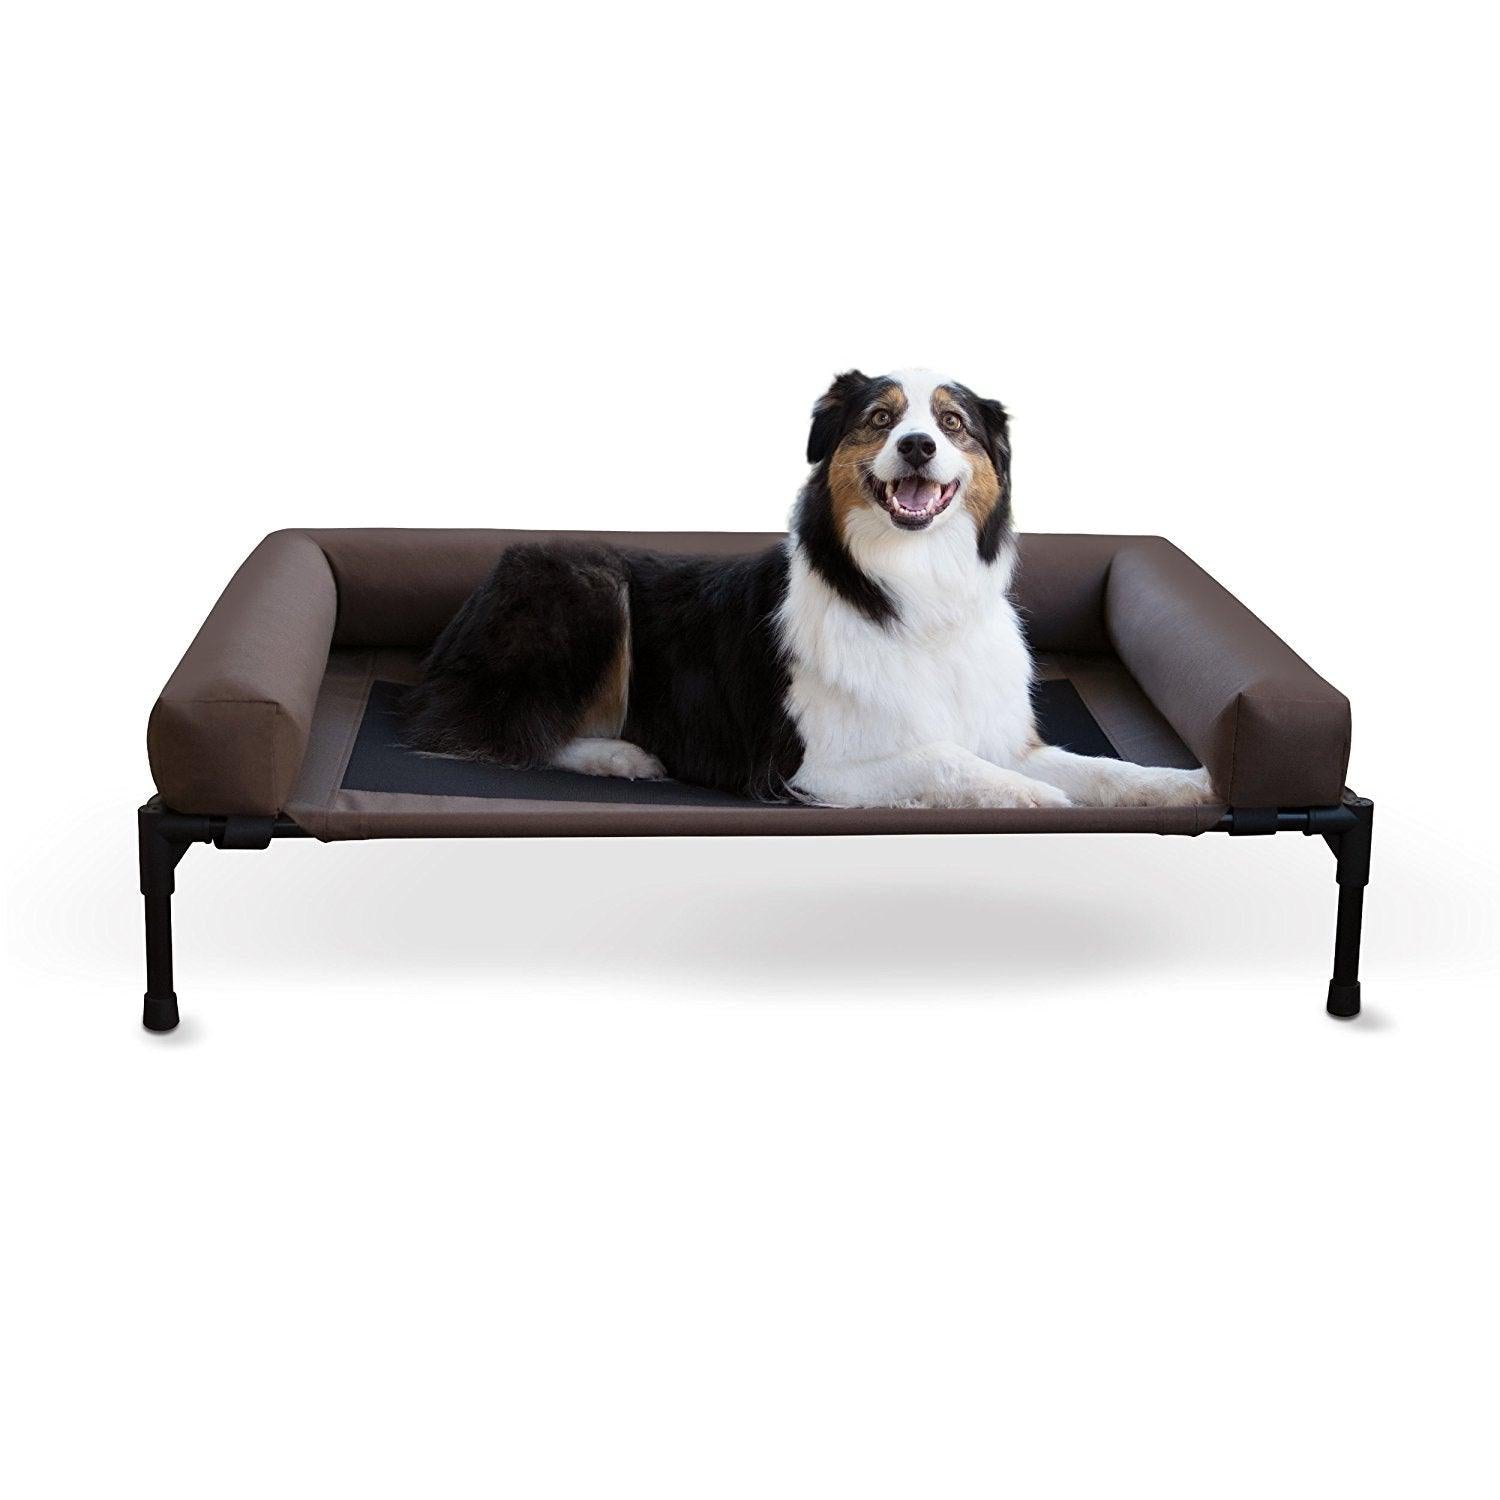 Wish List: Elevated Dog Bed with Bolster for HASRA (AL)